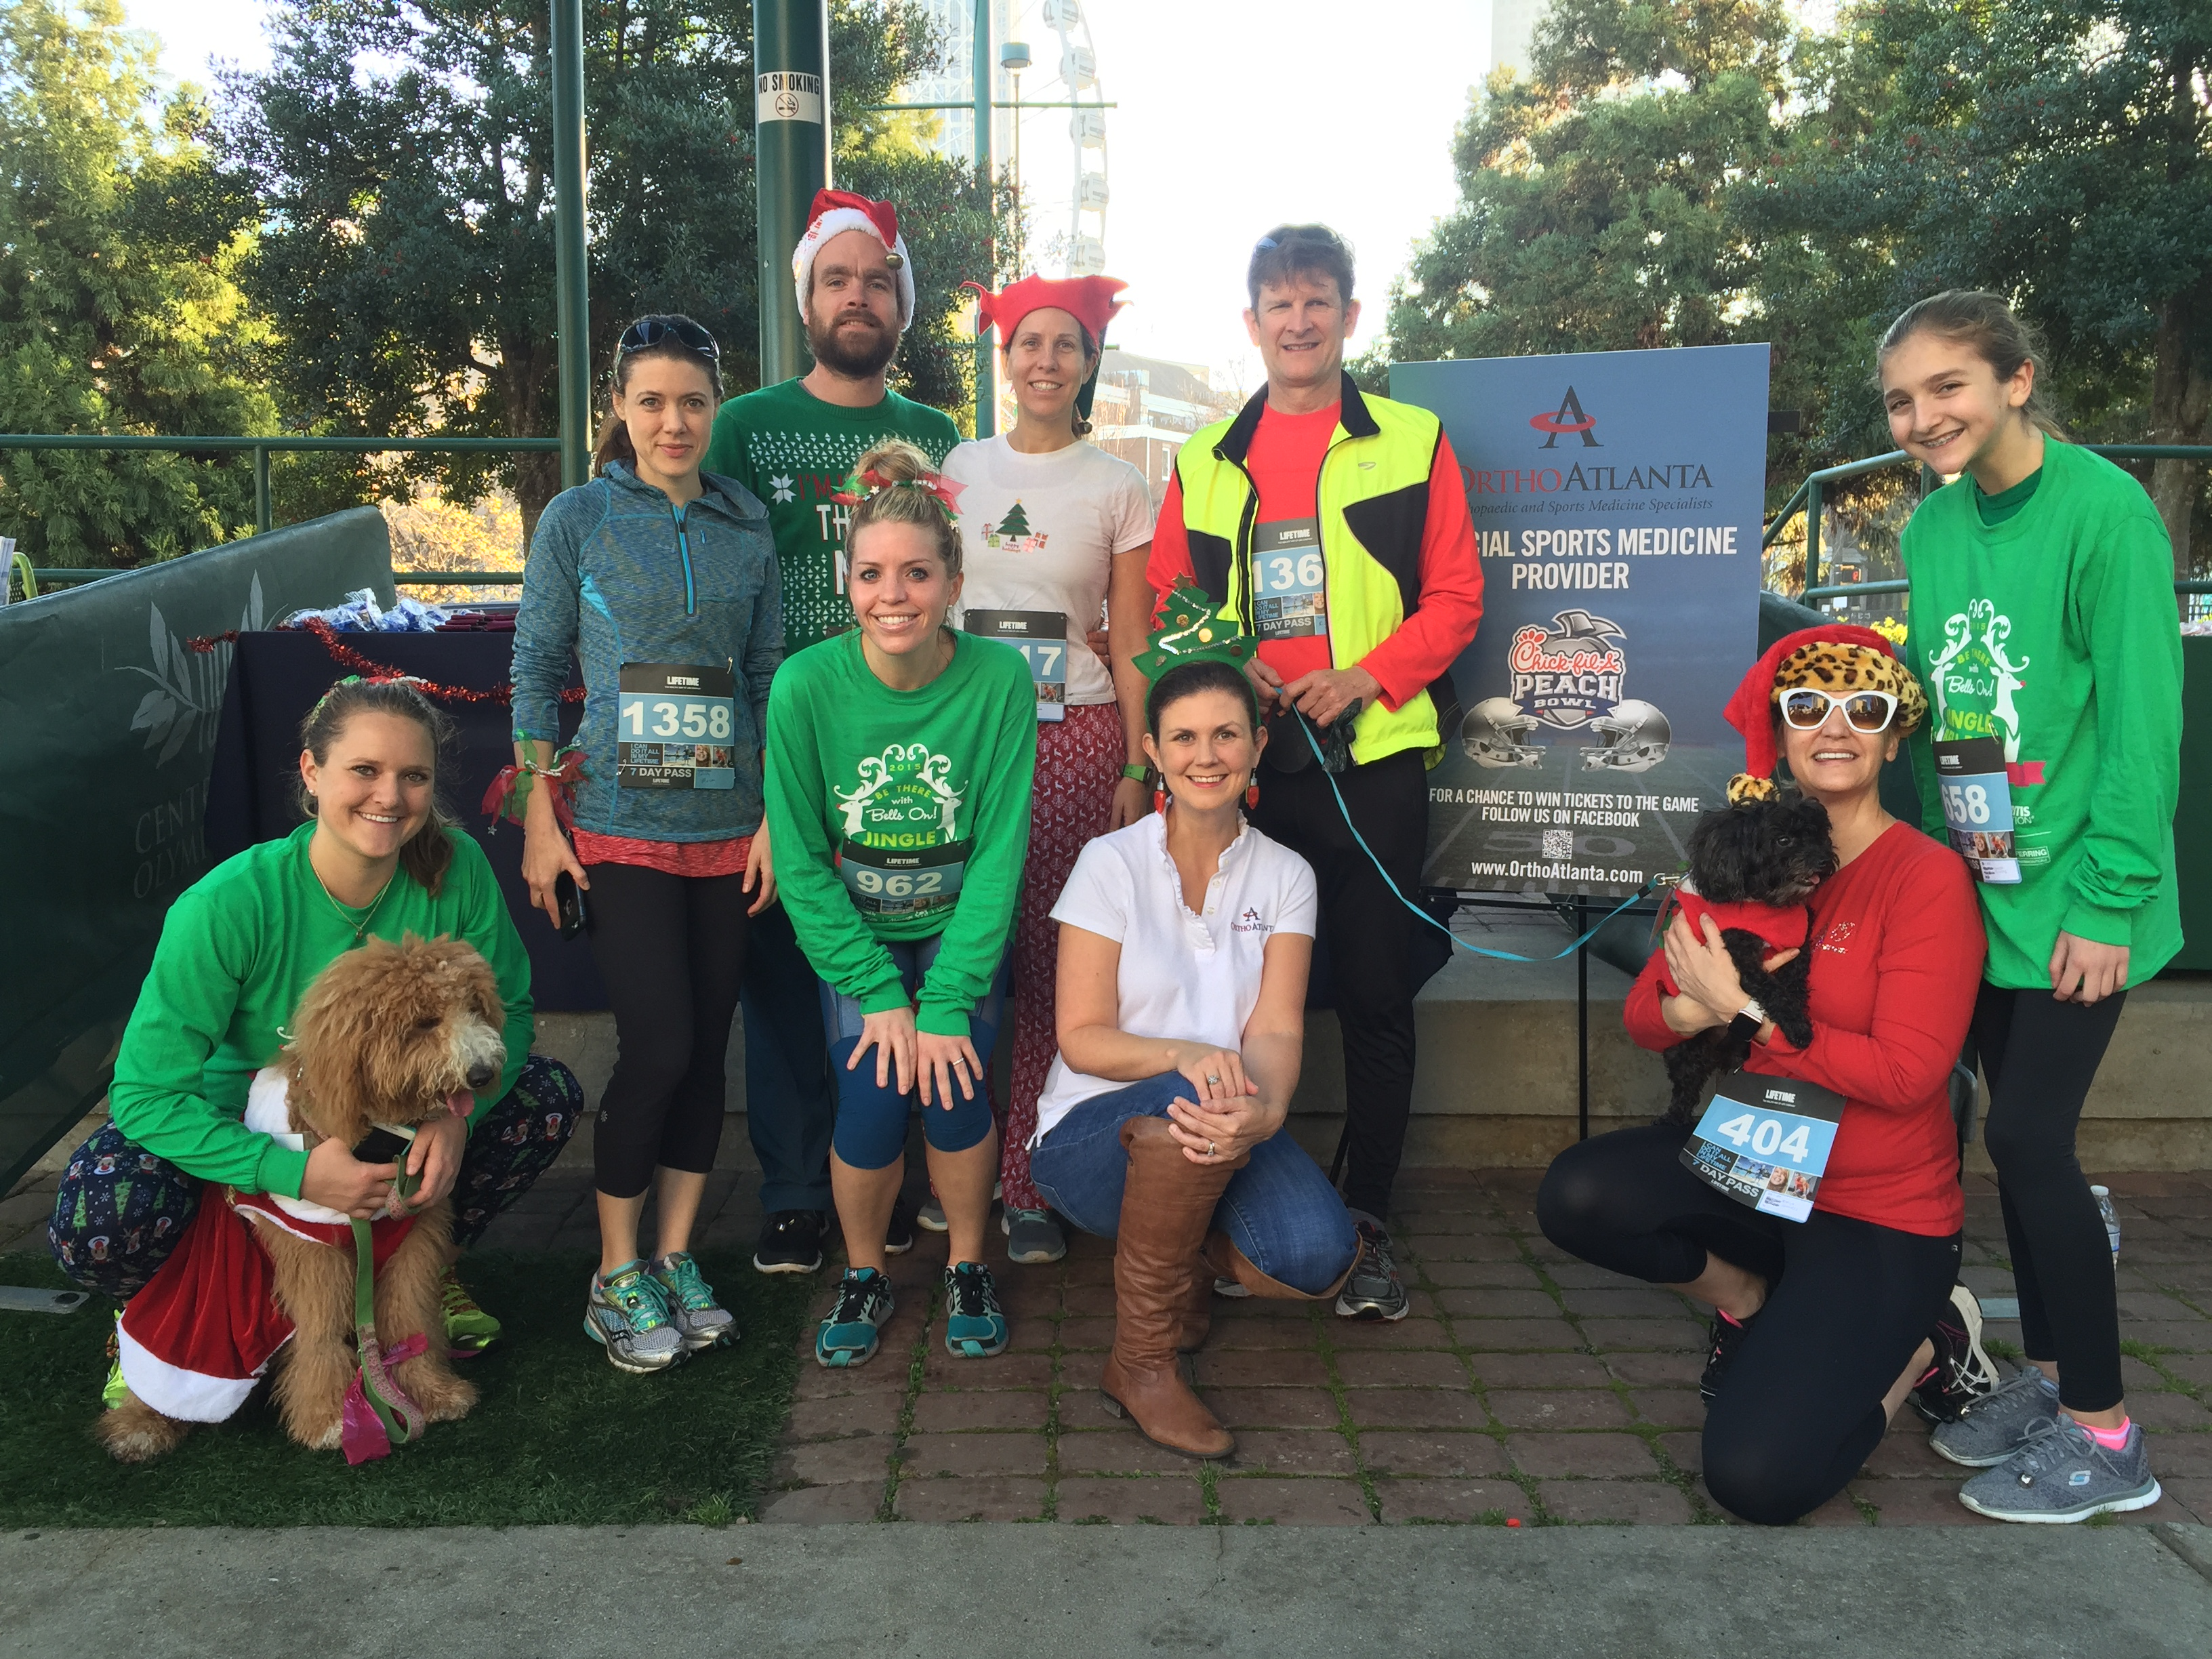 2015 OrthoAtlanta Jingle Bell Run for Arthritis participants